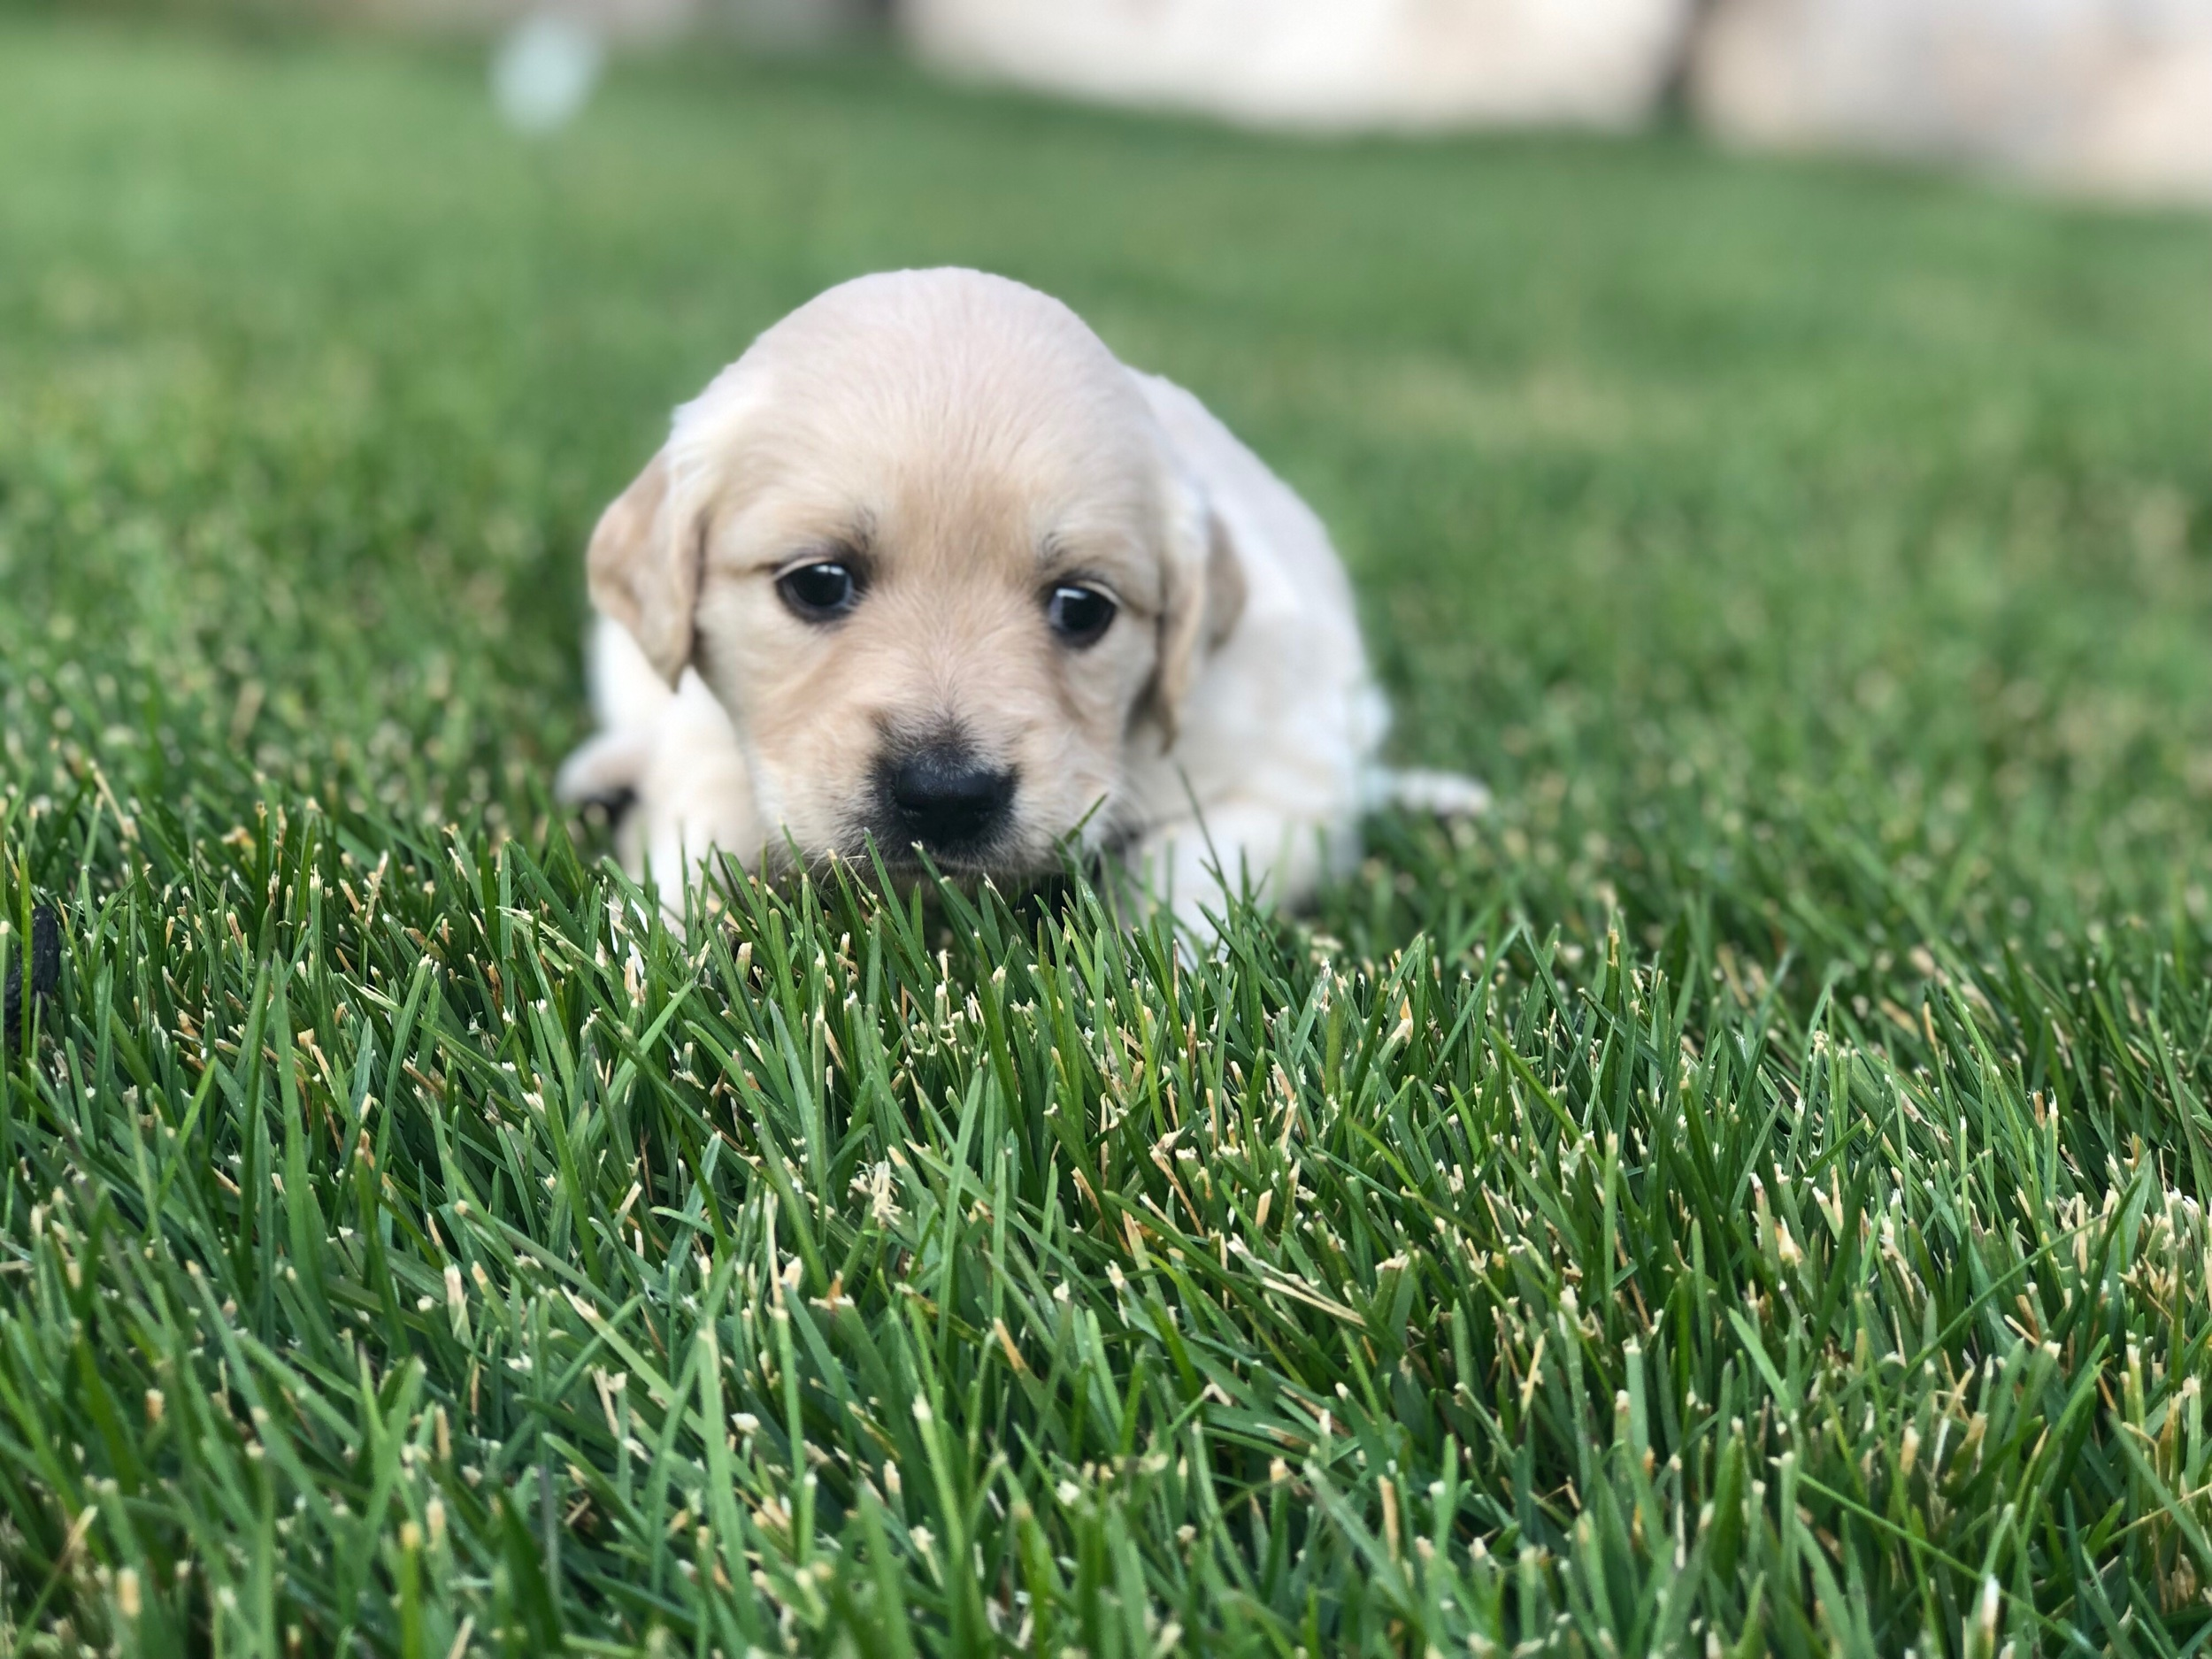 This is Kristen a light gold sister with a purple bow. She has the classic Golden retriever coat that will shed. She weighs 3 lbs 6.5 oz.